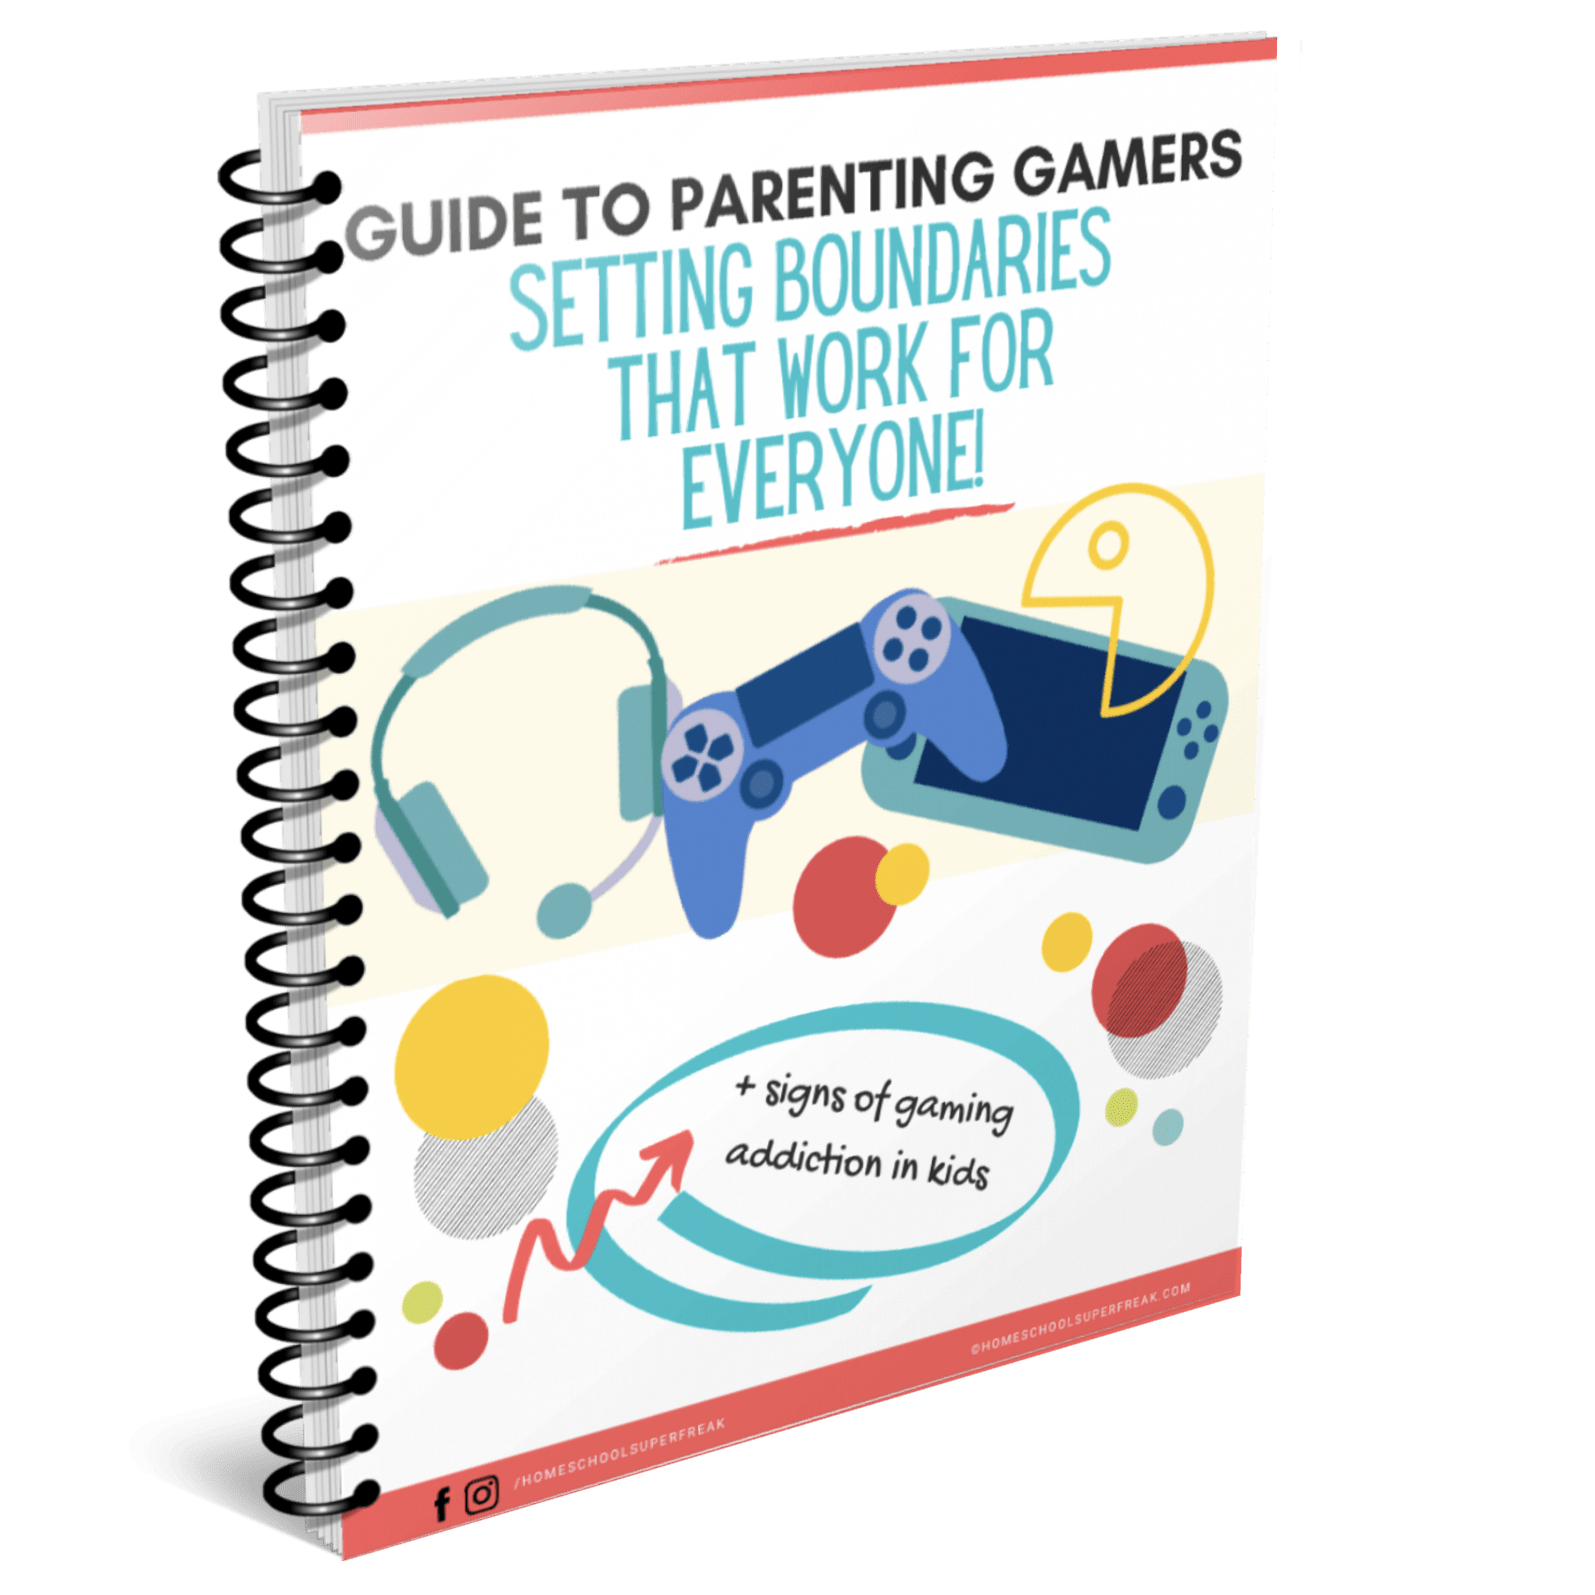 GUIDE TO PARENTING GAMERS: Setting Boundaries for Gaming Kids cover